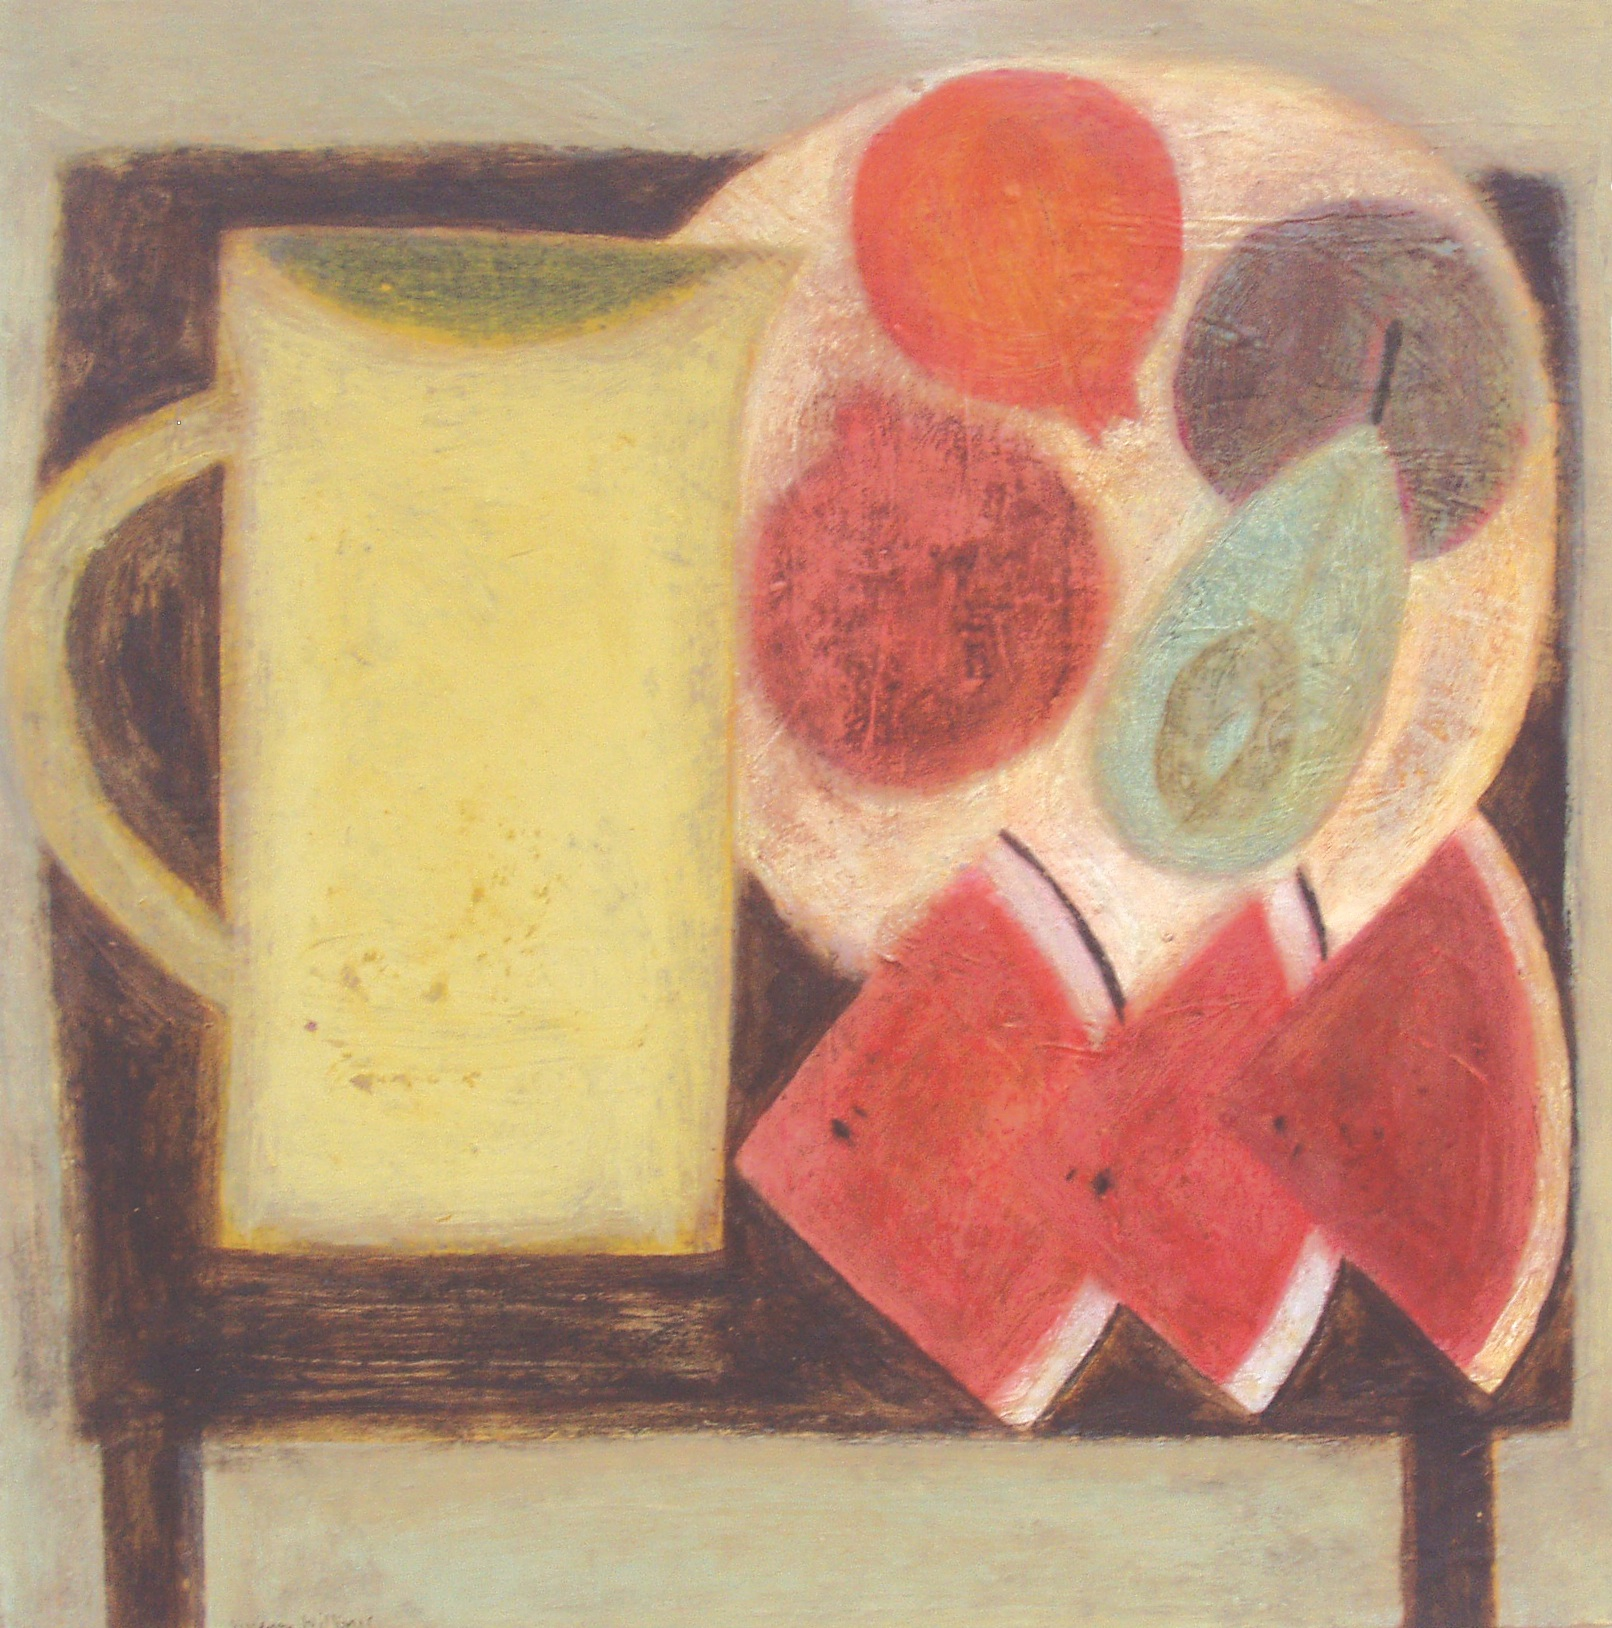 Jug with Watermelon and Fruit, 40.5cm x 40cm, 2010